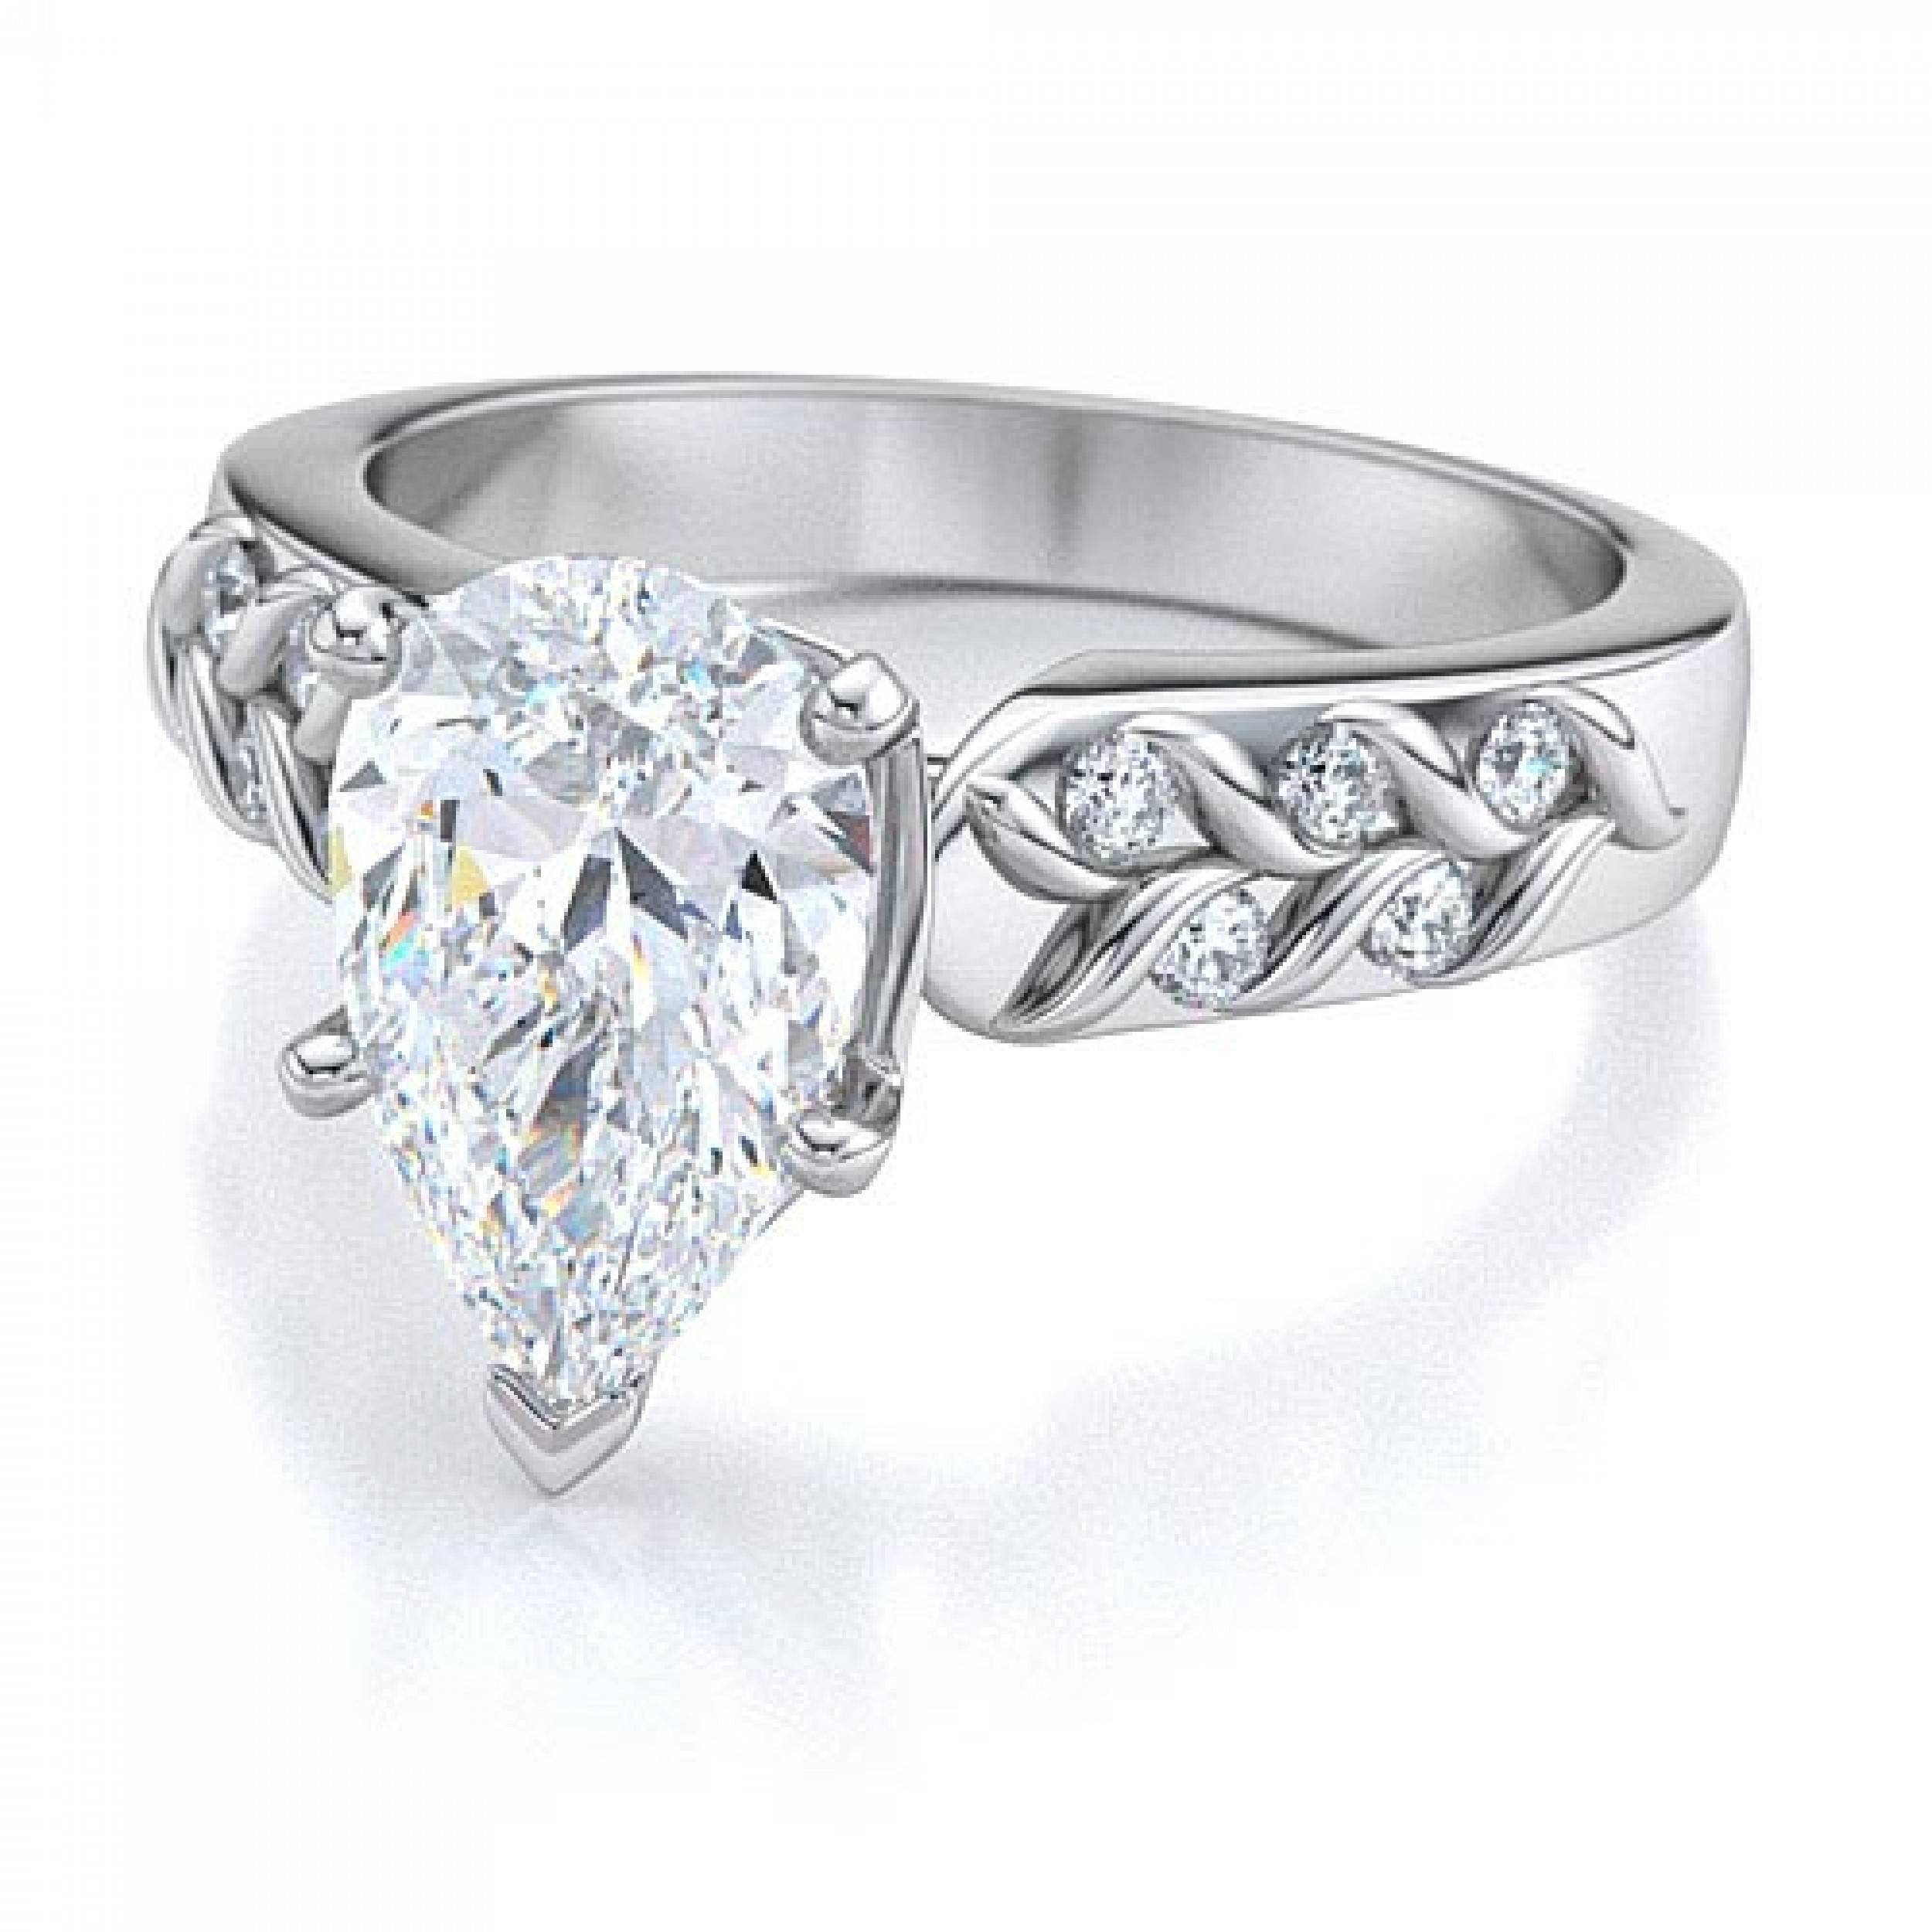 round ct engagement matching band wedding ring collection settings jewellery setting diamond collections